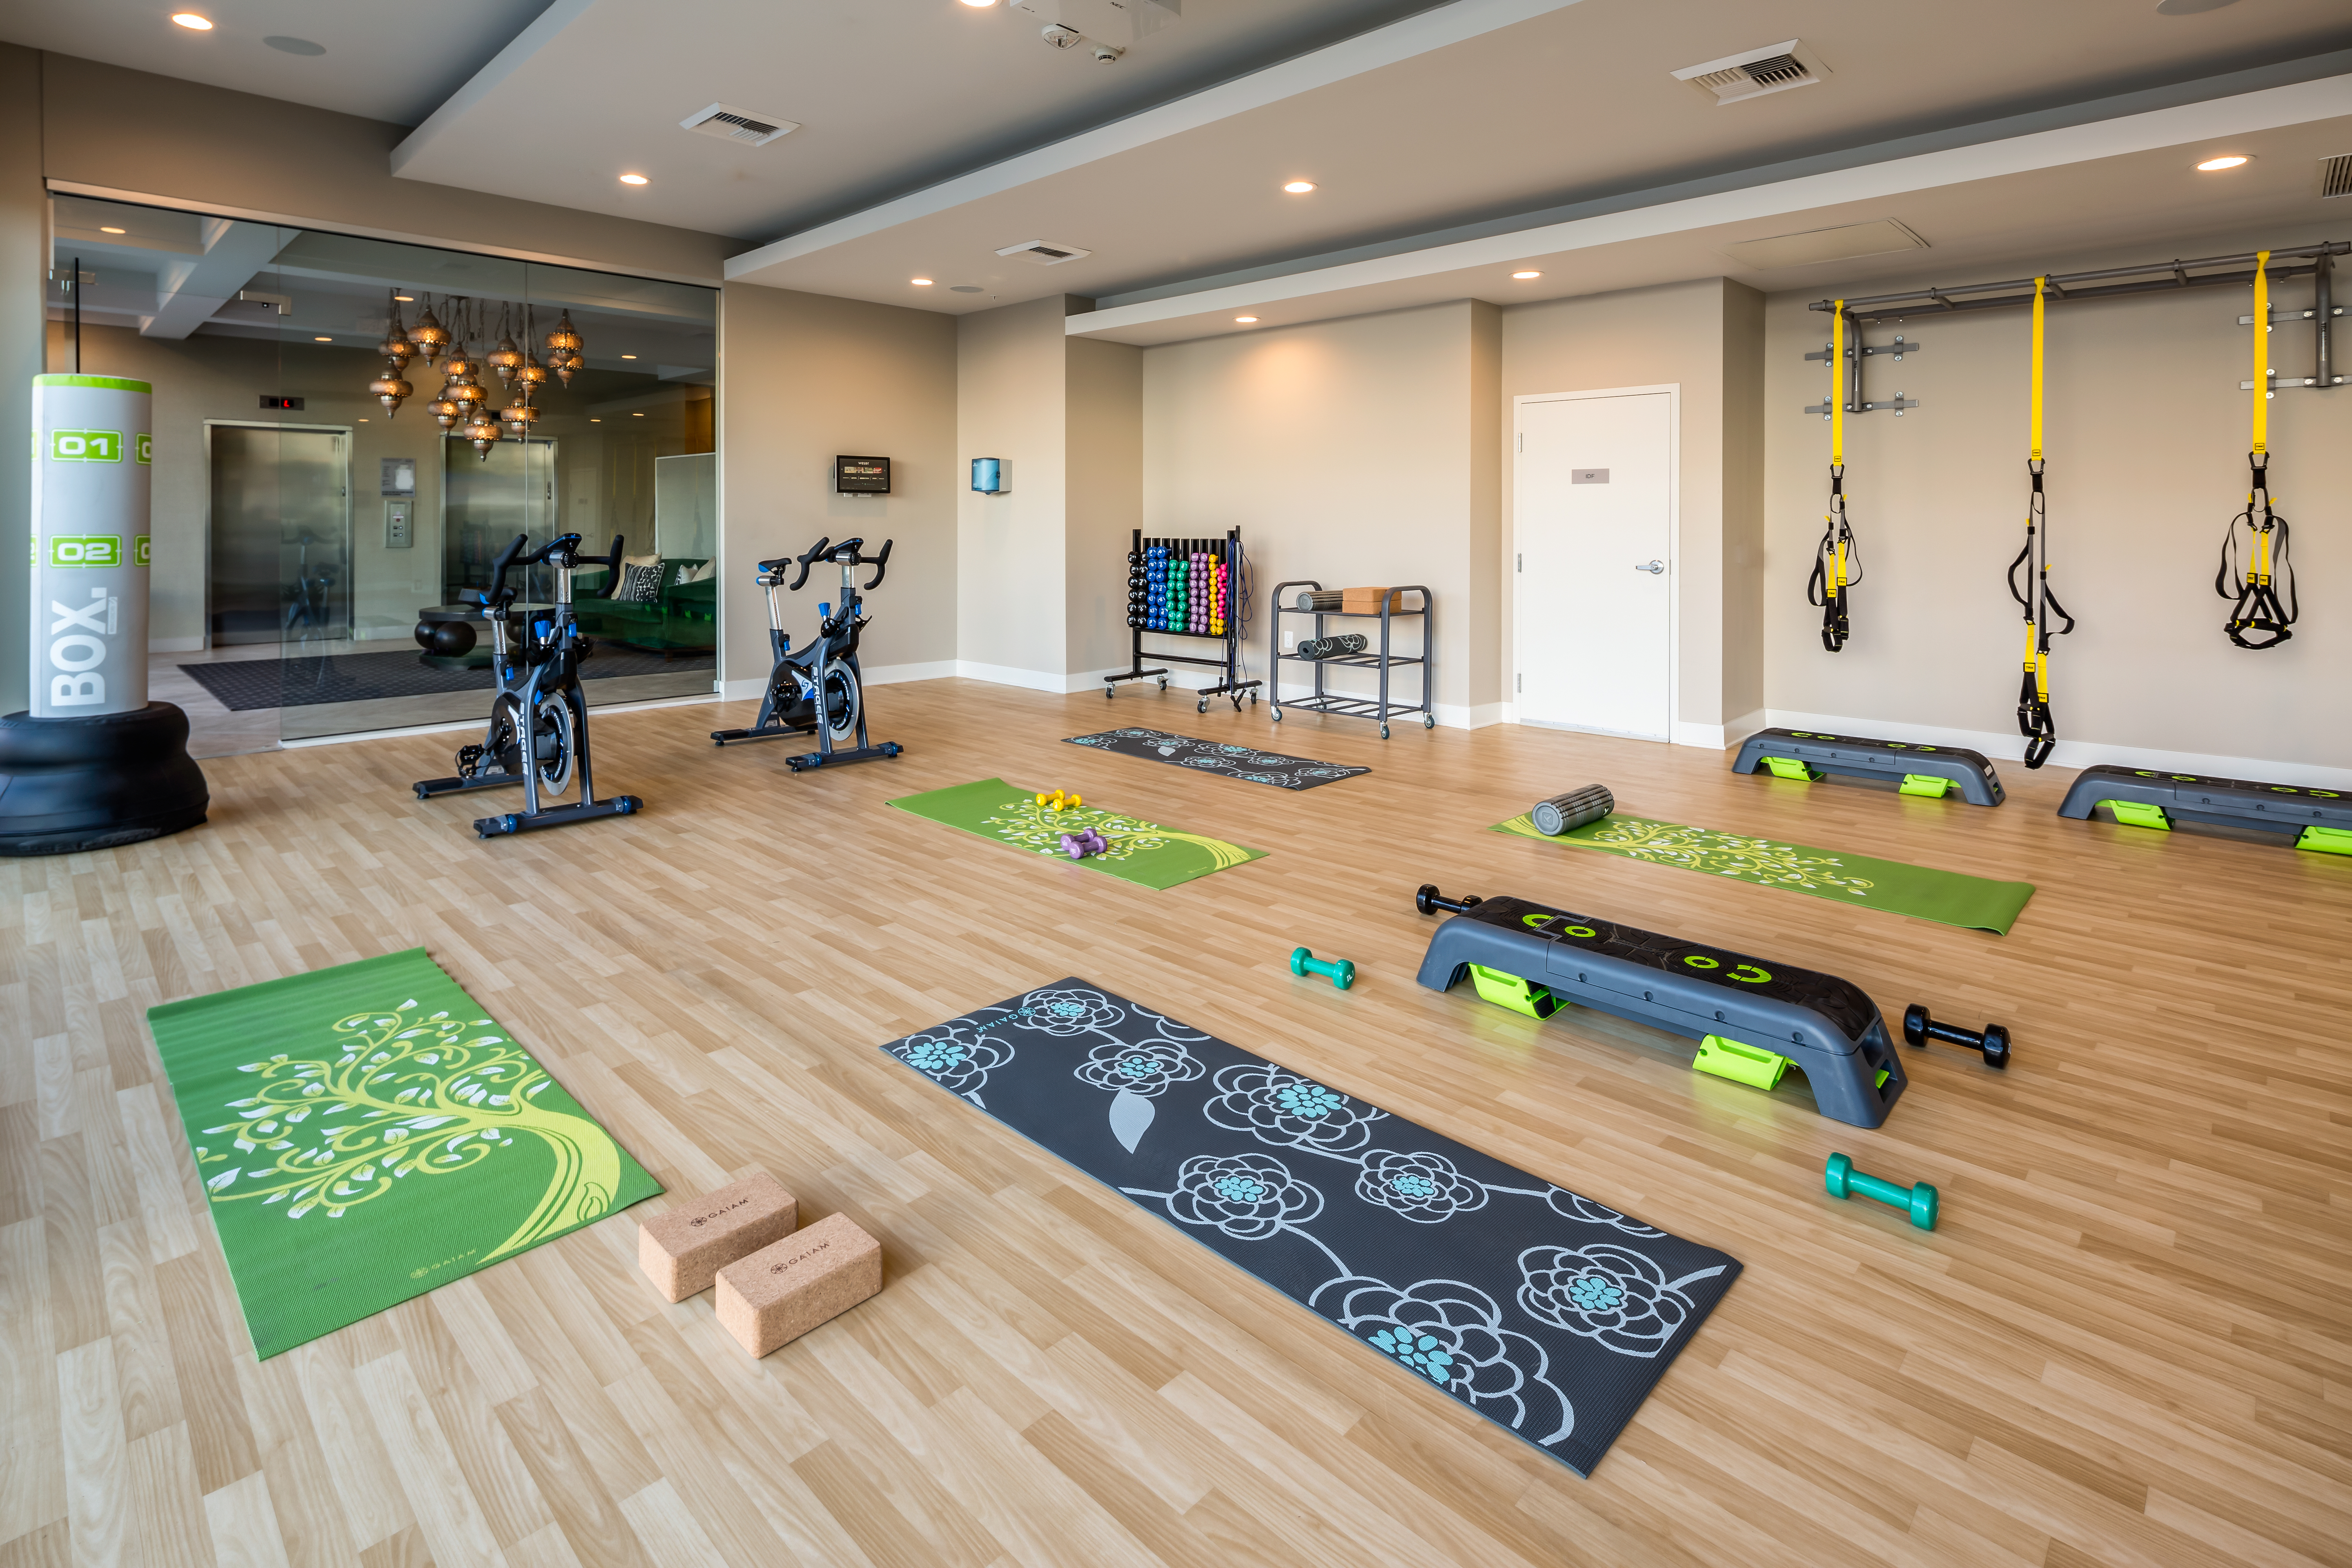 Onyx Apartments yoga studio with yoga mats and bicycles